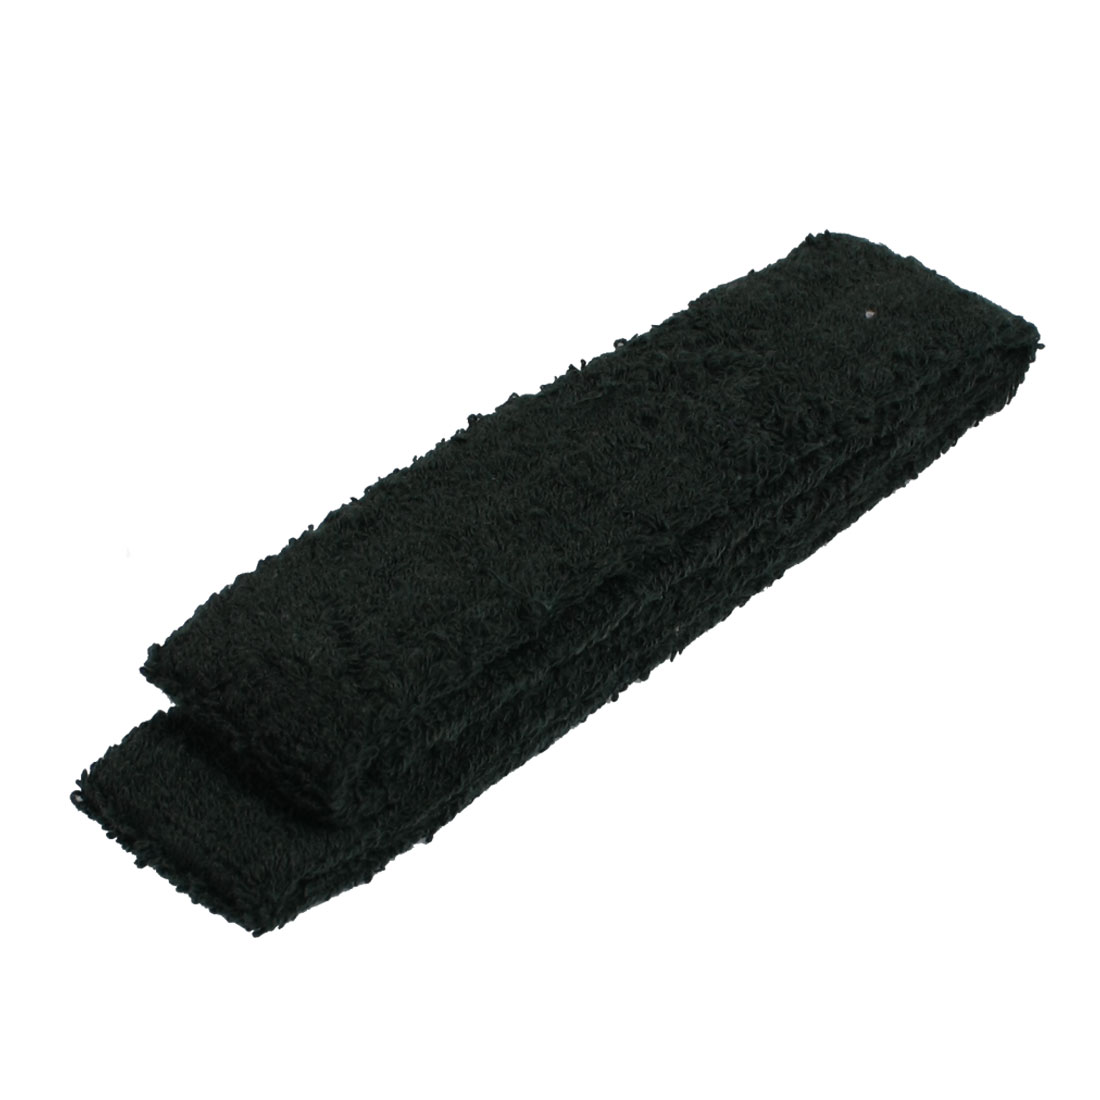 75cm Long Adhensive Tape Tennis Racket Sweat Absorption Towel Grip Black